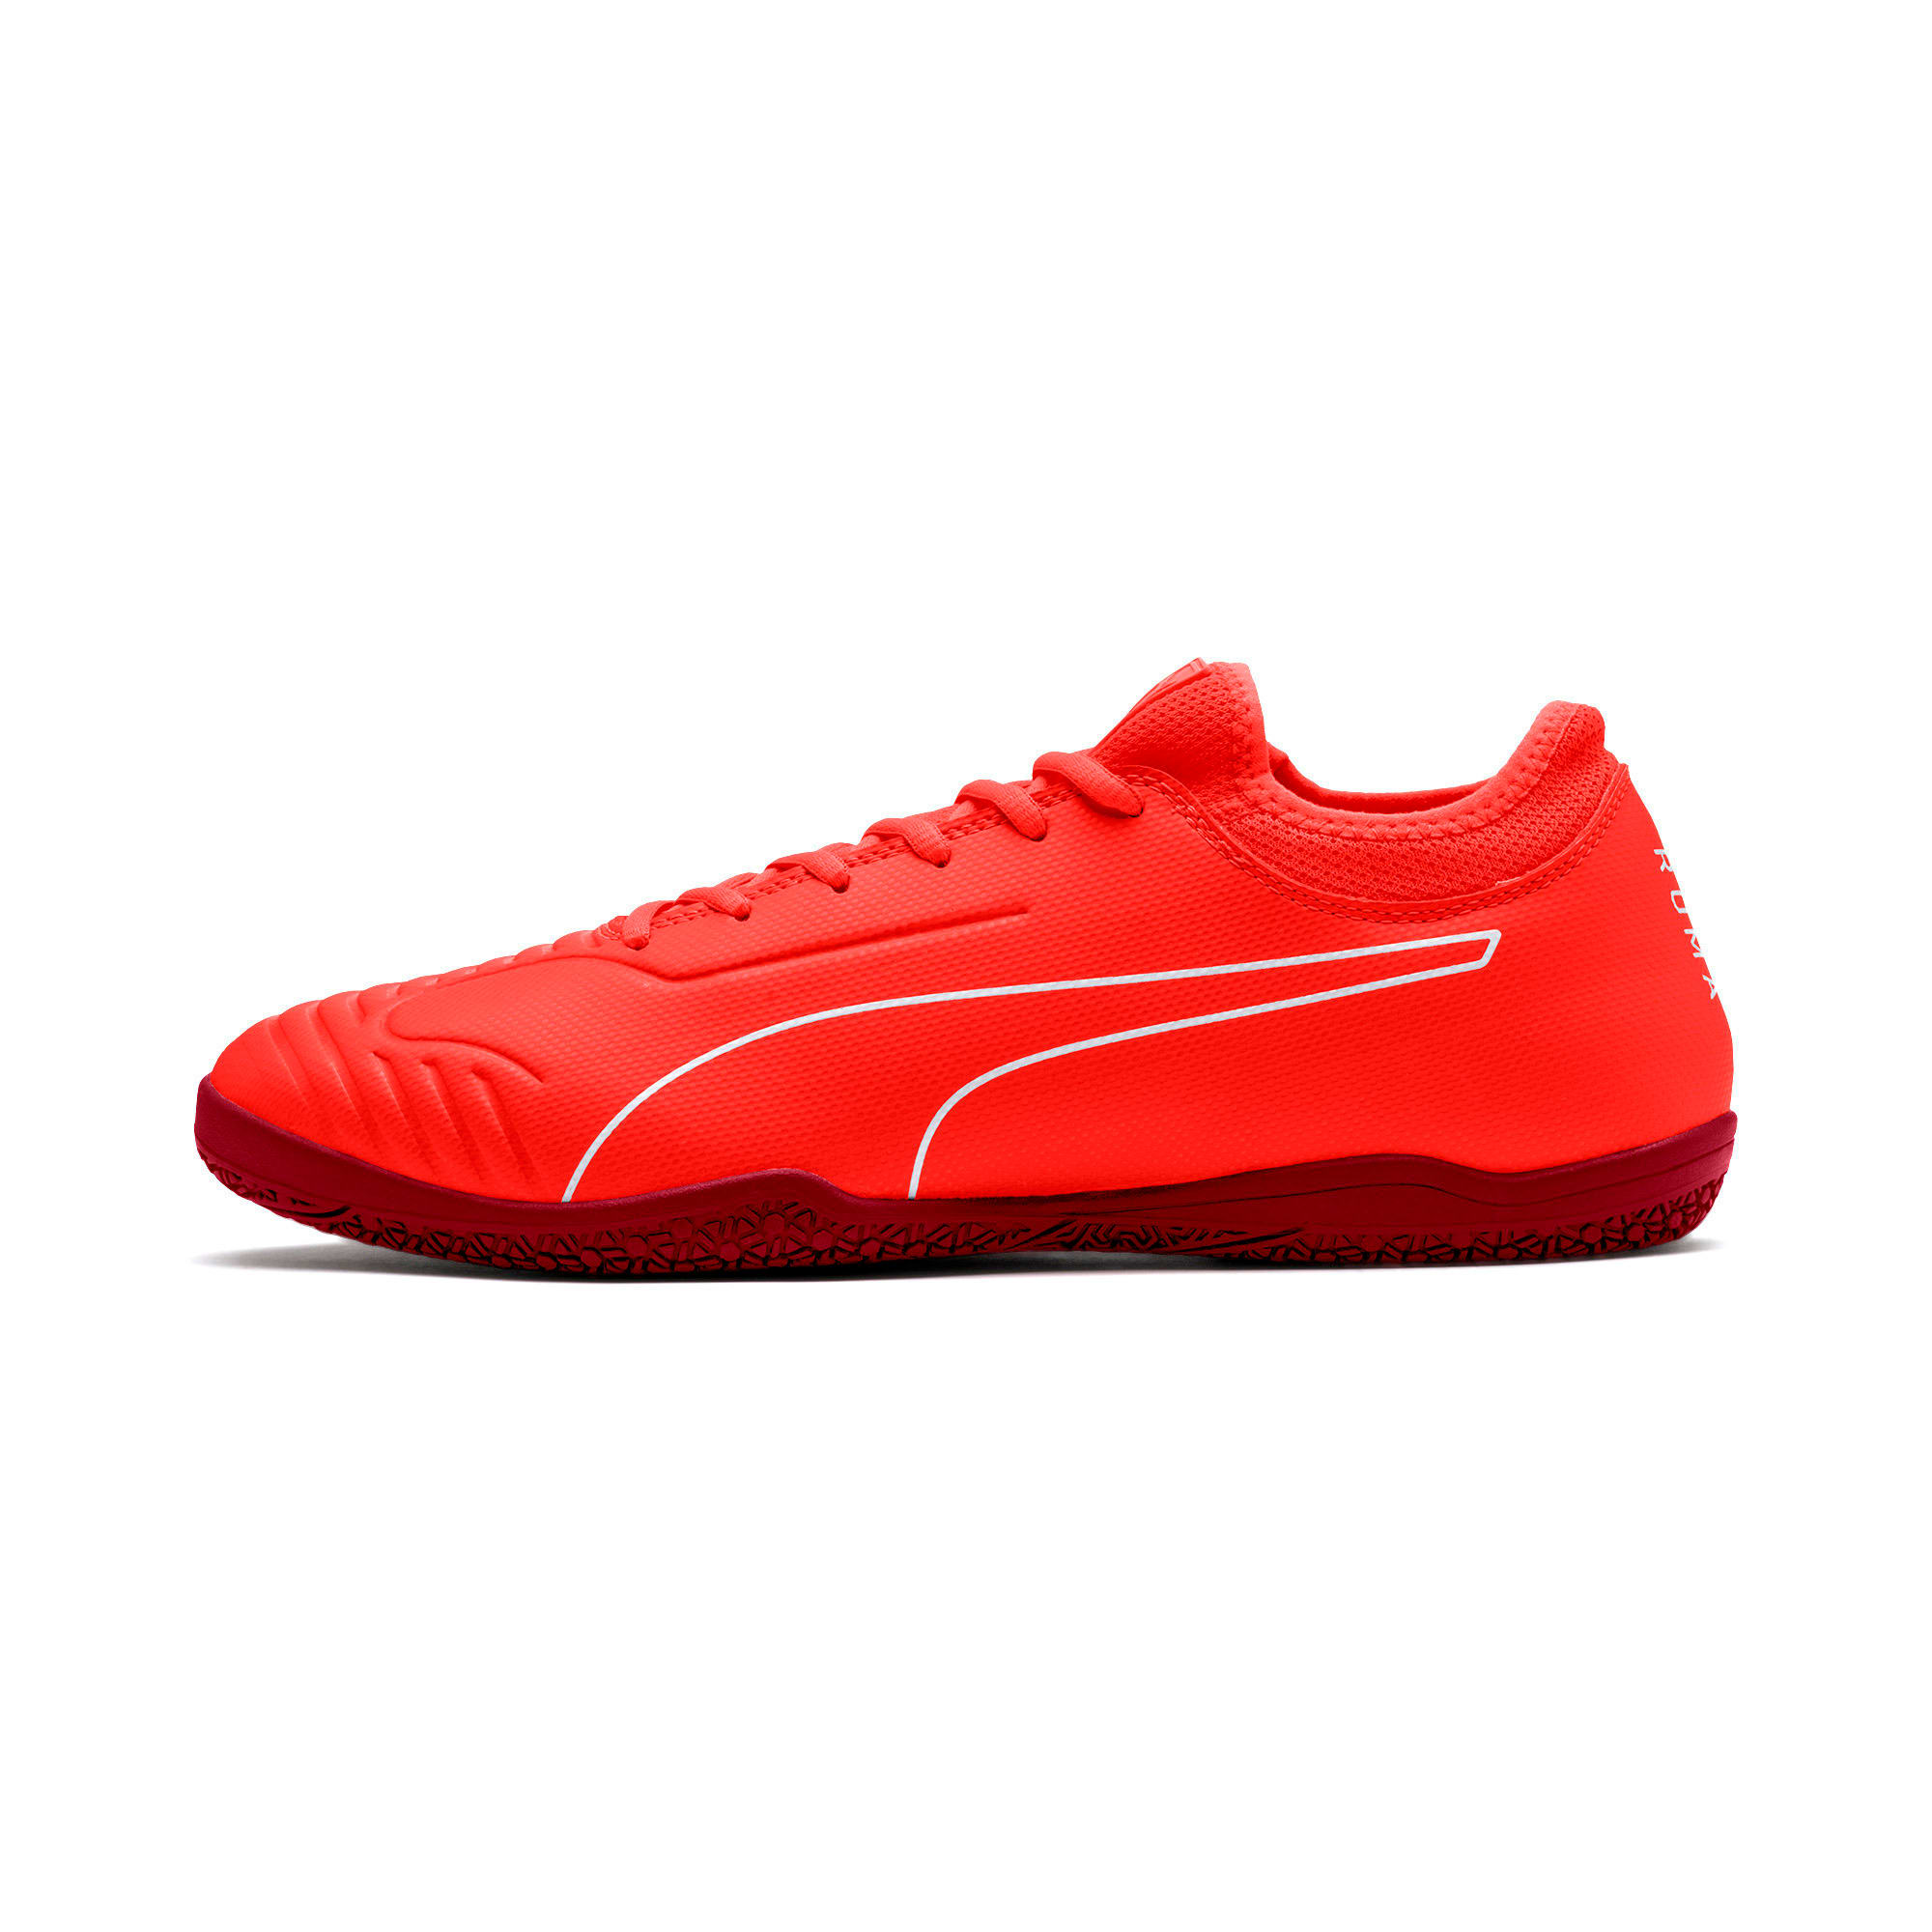 Thumbnail 1 of 365 Sala 2 Men's Football Boots, Nrgy Red-Rhubarb, medium-IND